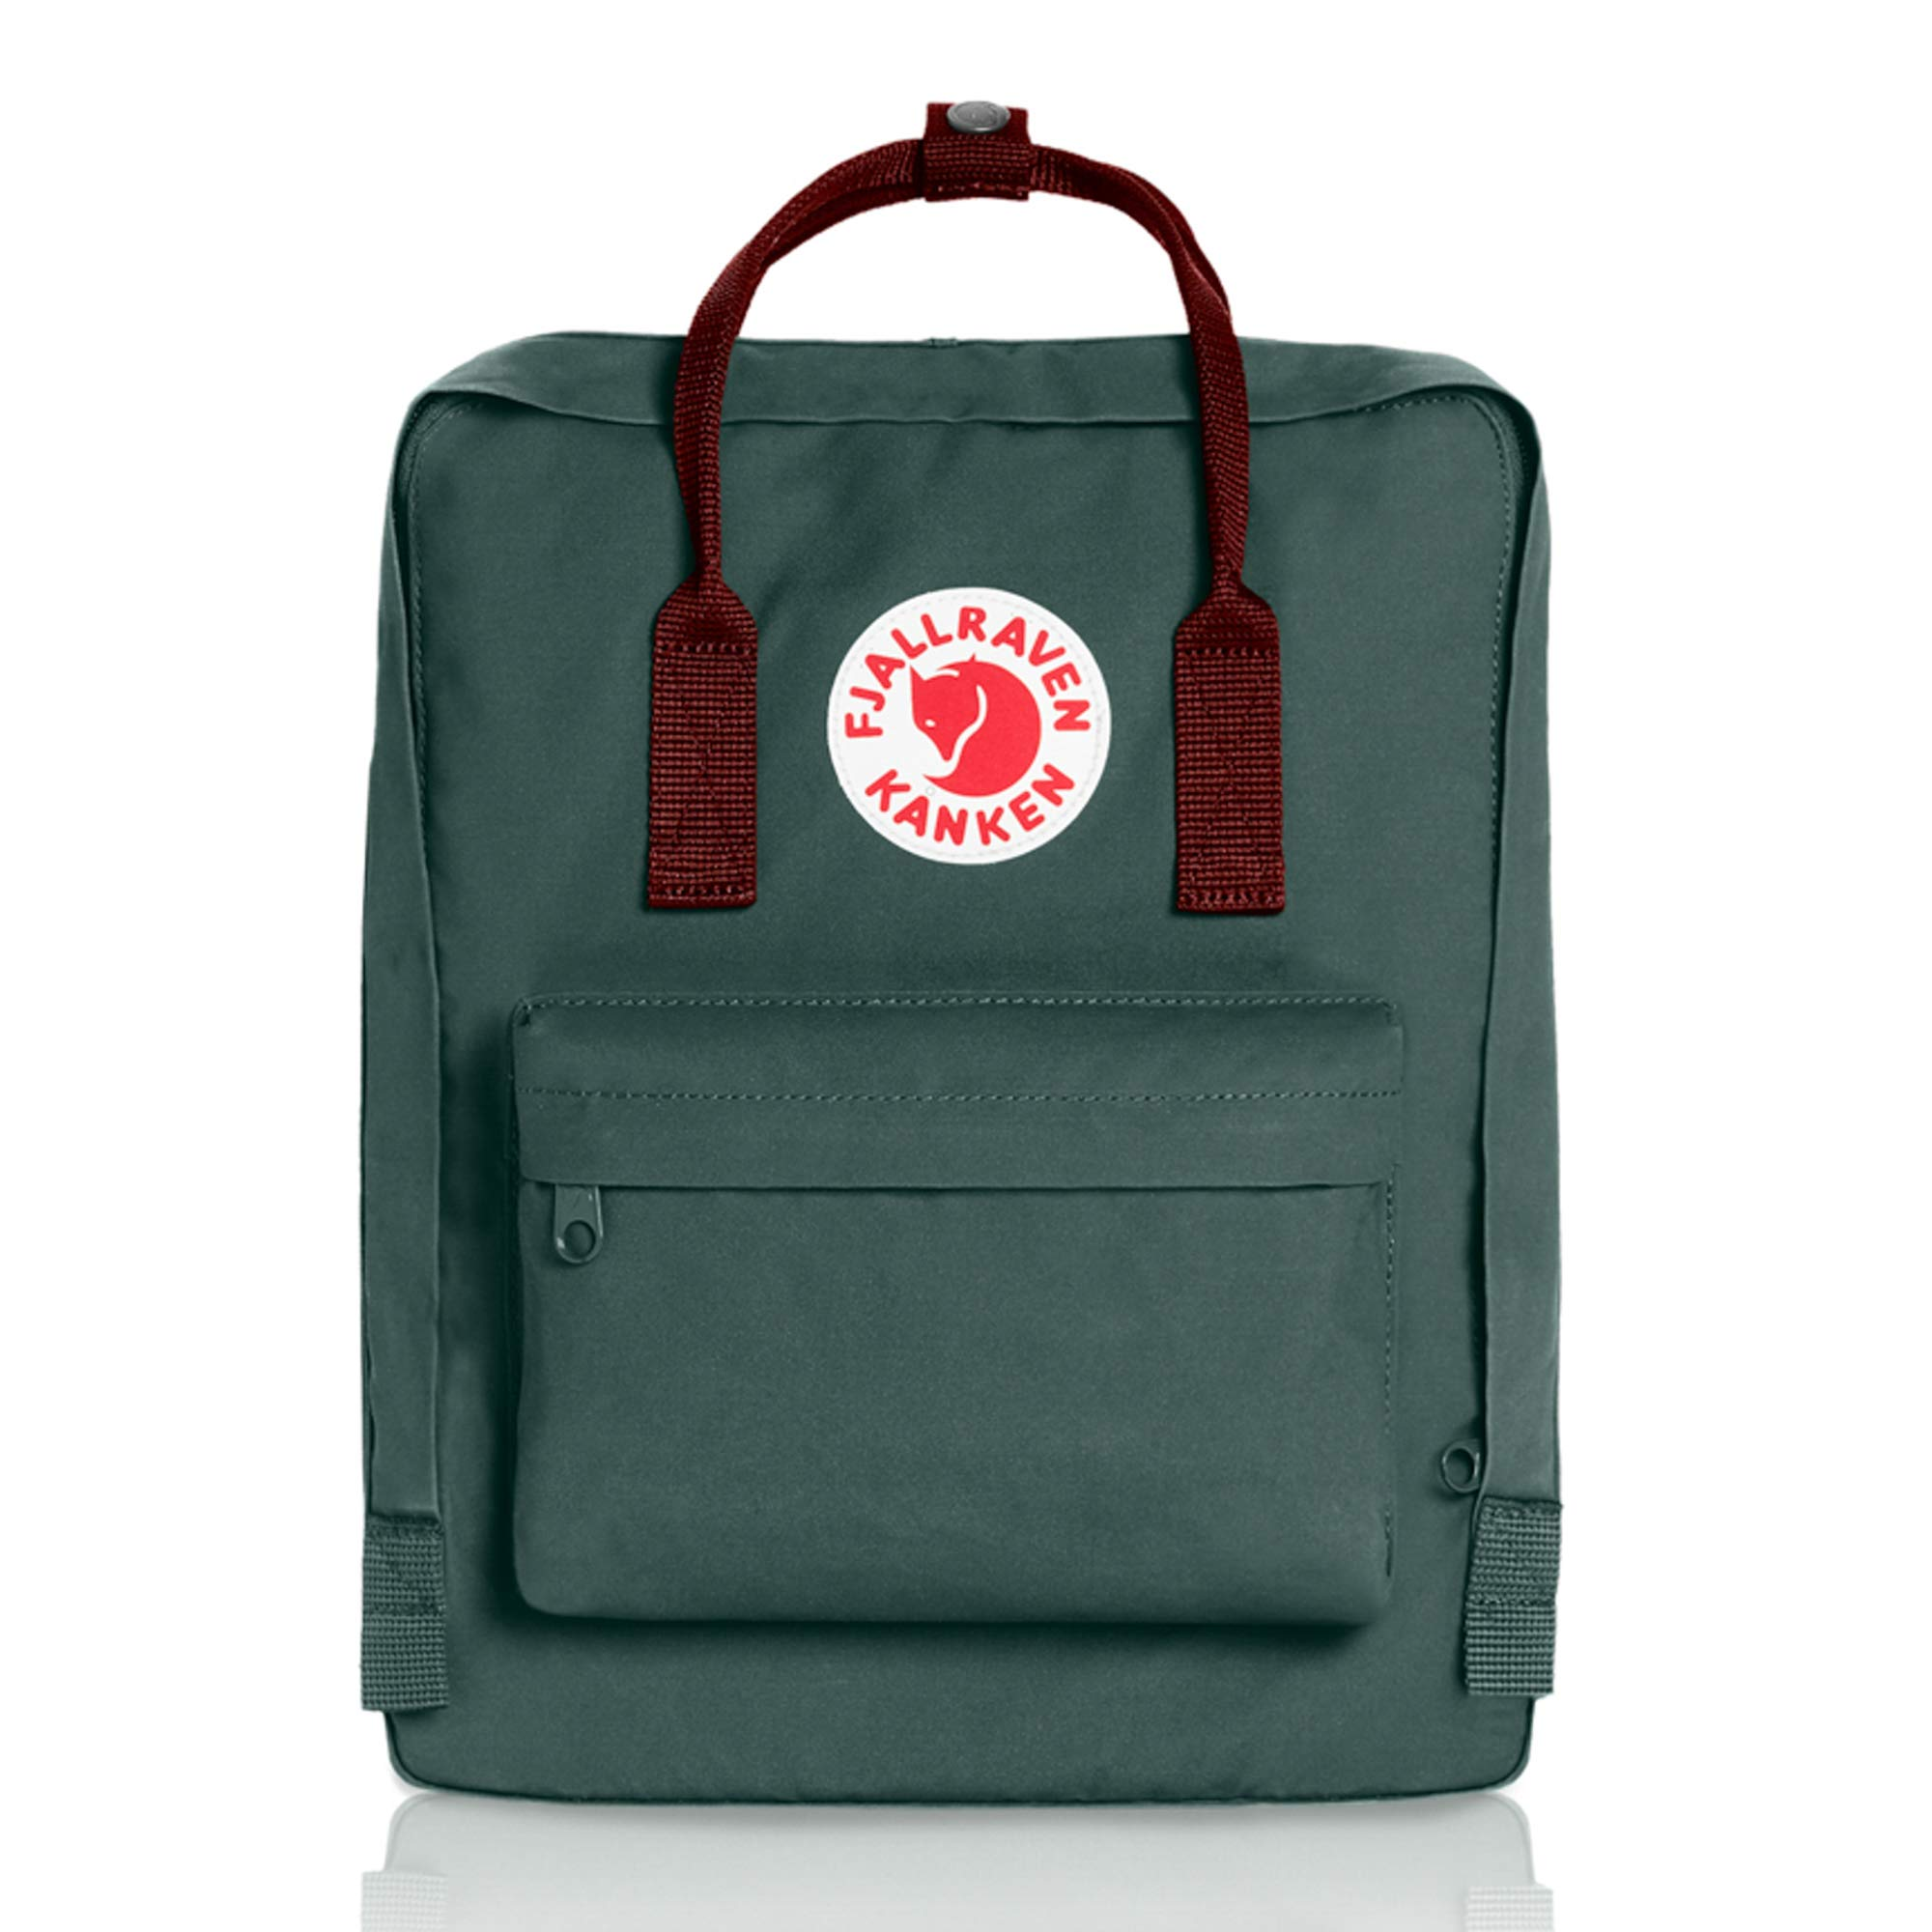 Fjallraven - Kanken Classic Backpack for Everyday, Forest Green/Ox Red